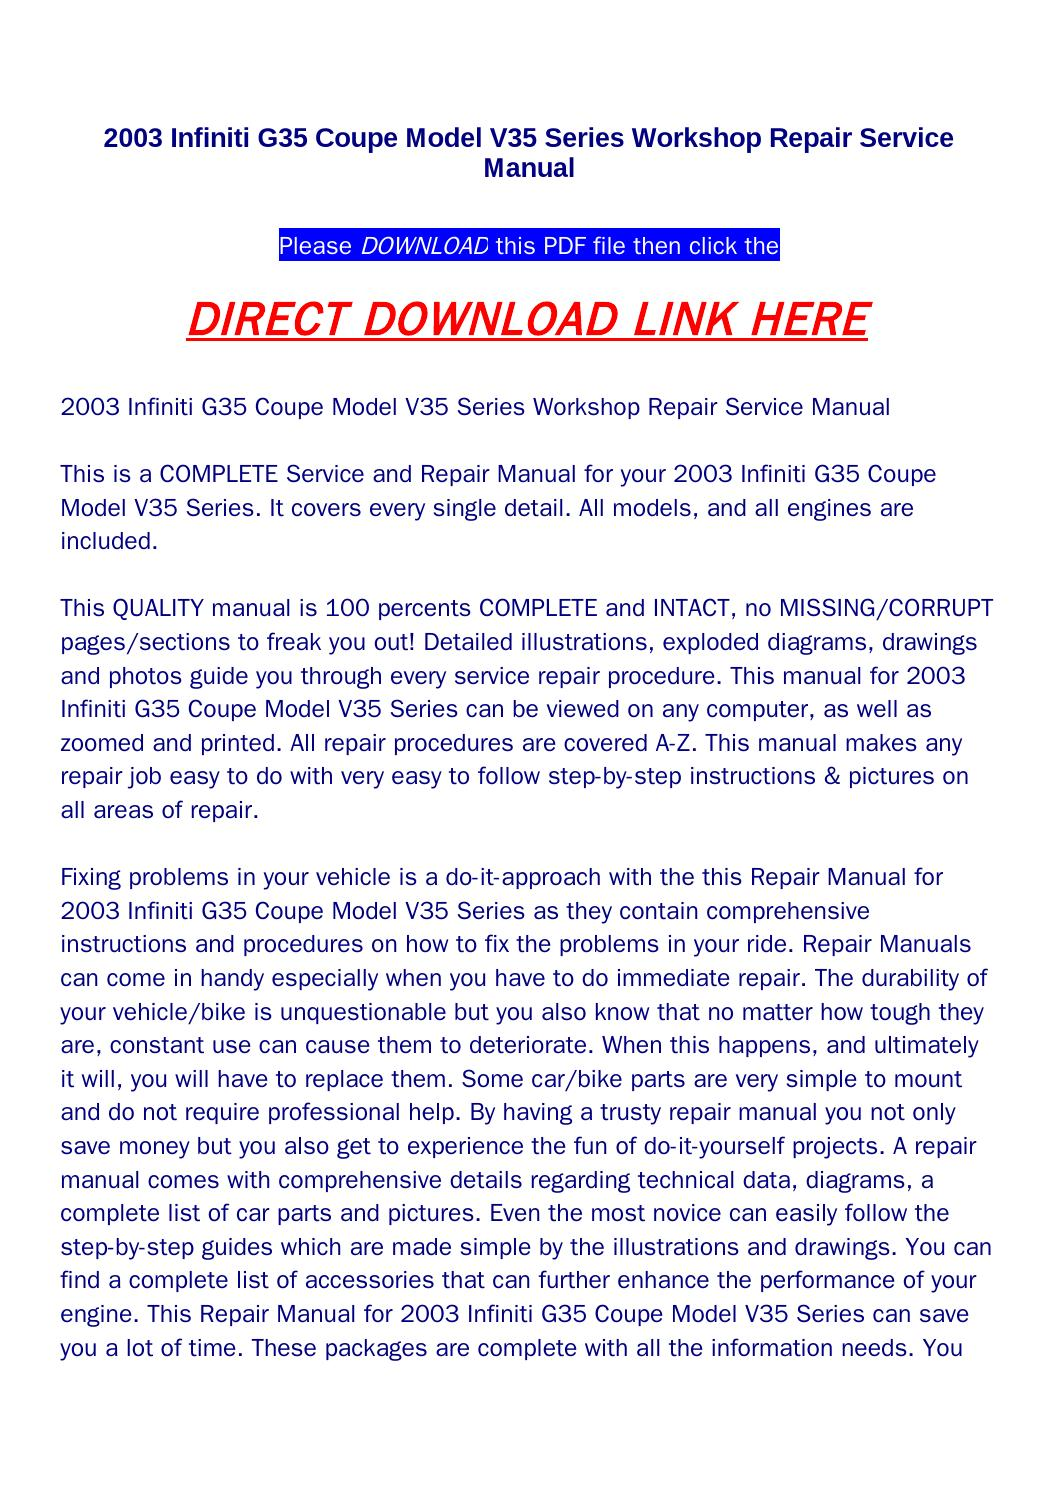 2003 infiniti g35 coupe model v35 series workshop repair service manual by  returnqqv - issuu